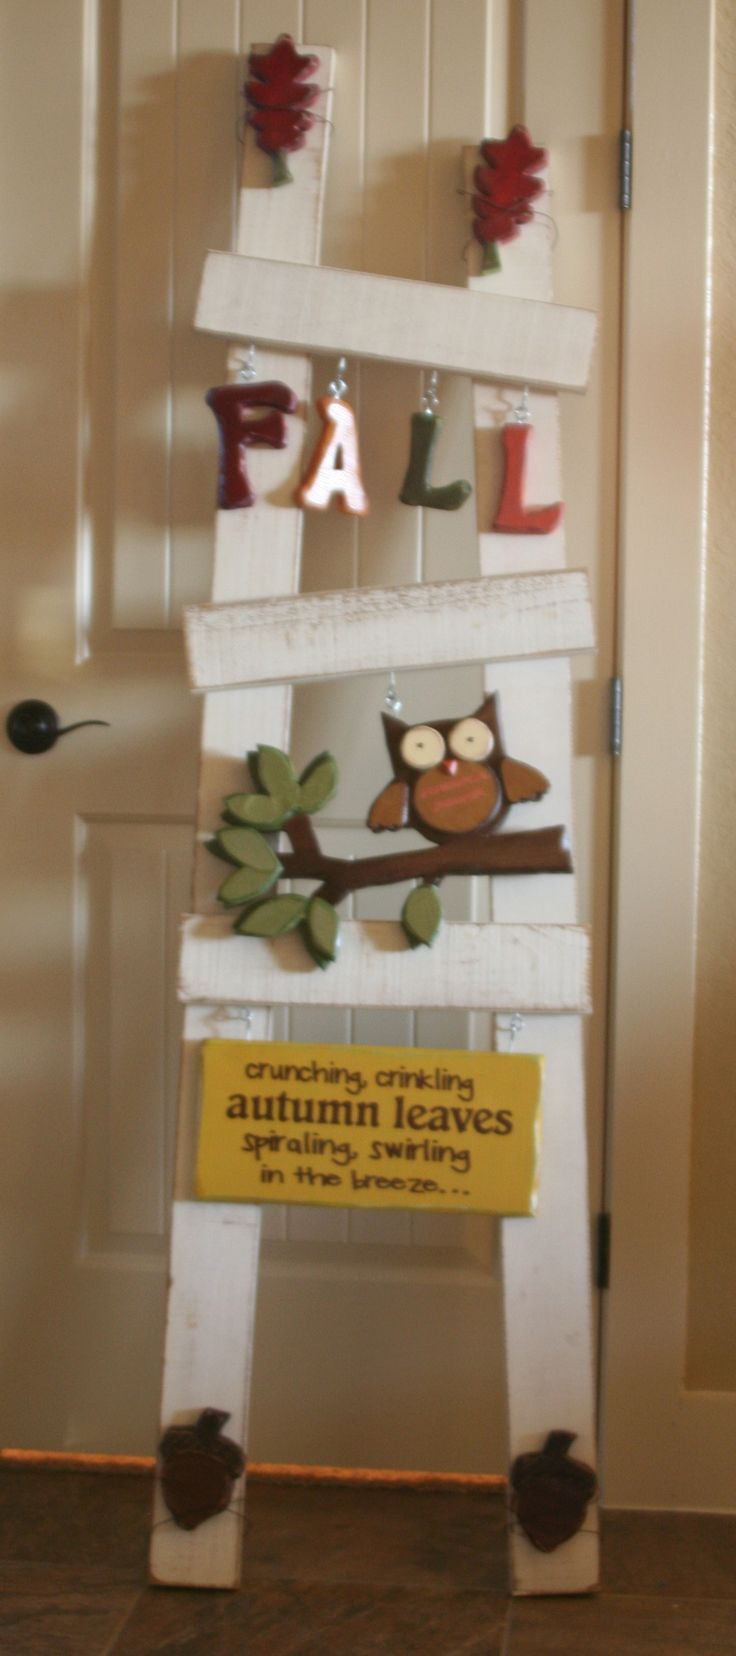 8 best images about Seasonal ladders & Decorations on Pinterest ... : quilted bear utah - Adamdwight.com